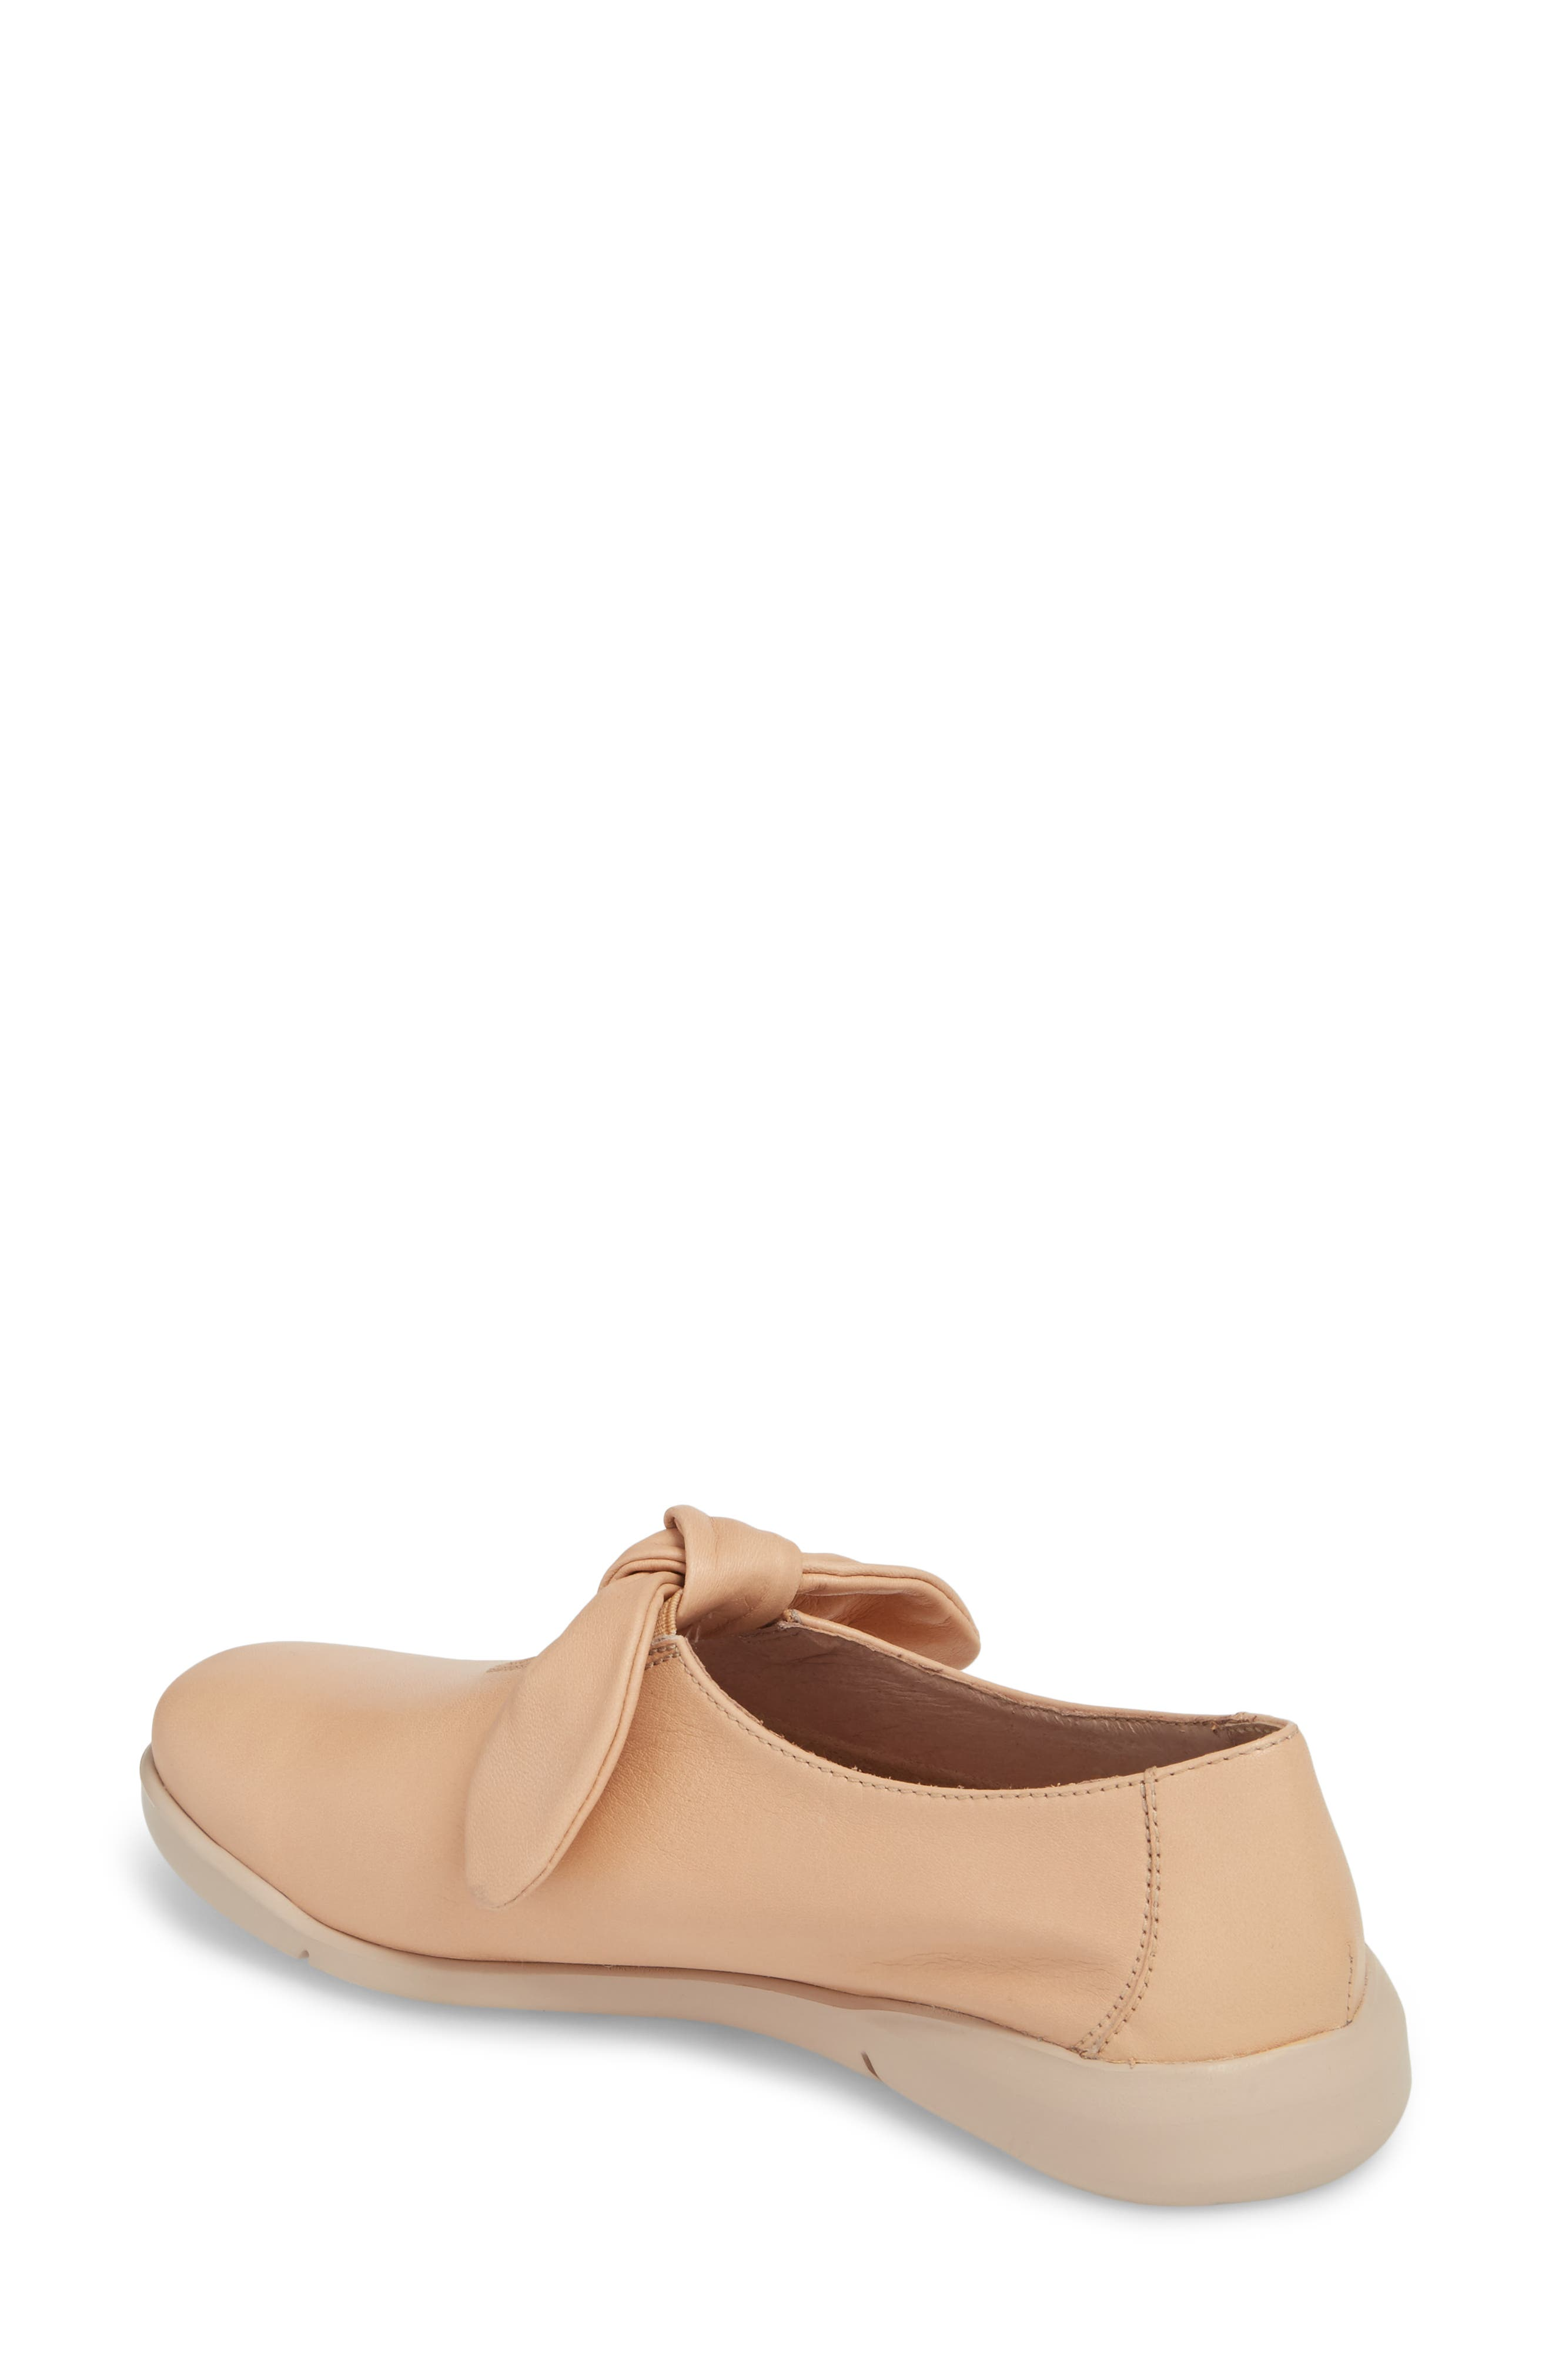 Knotted Mary Jane Flat,                             Alternate thumbnail 2, color,                             PALO BEIGE LEATHER